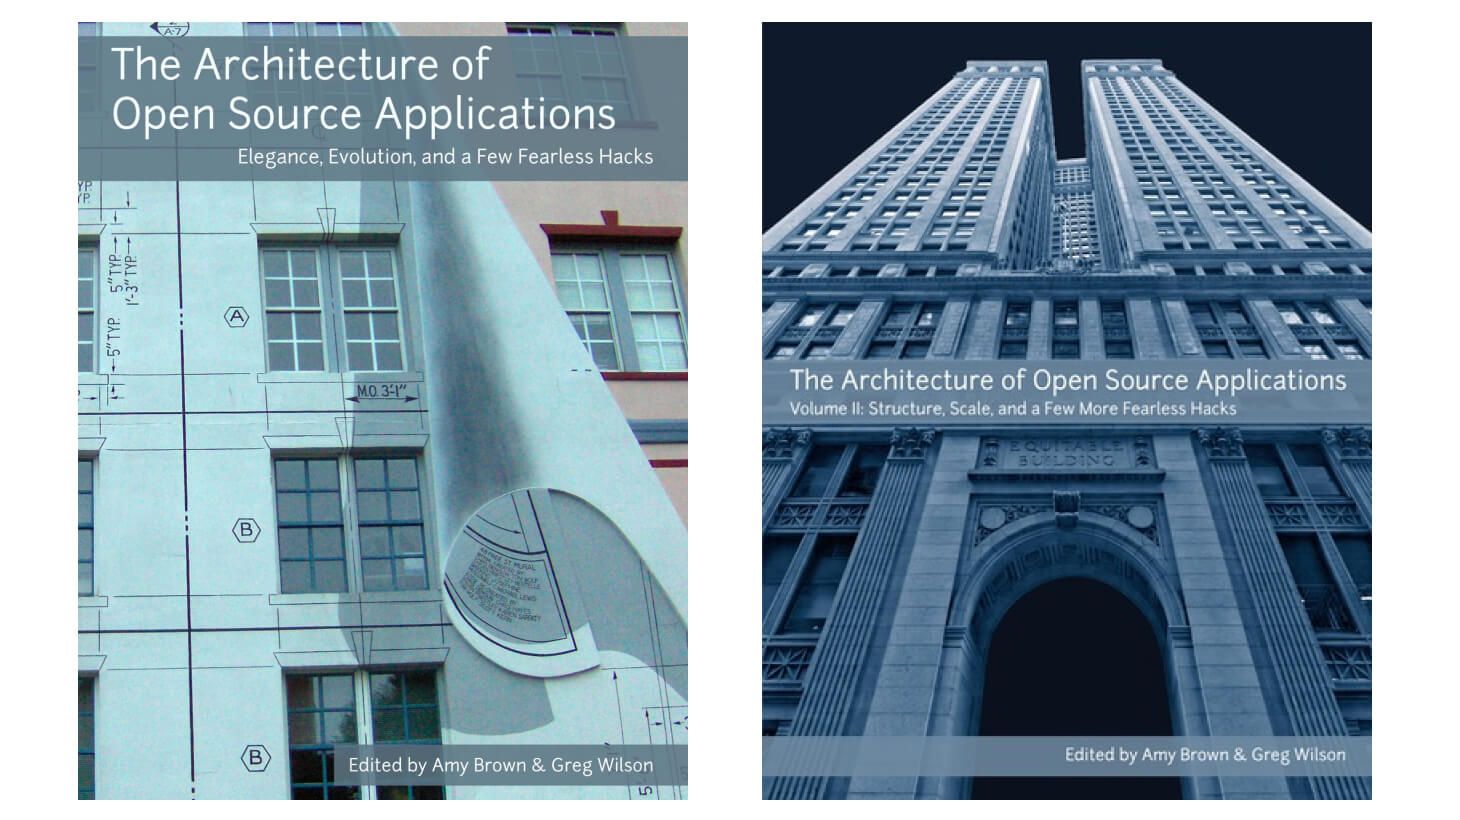 The Architecture of Open Source Applications (white background)